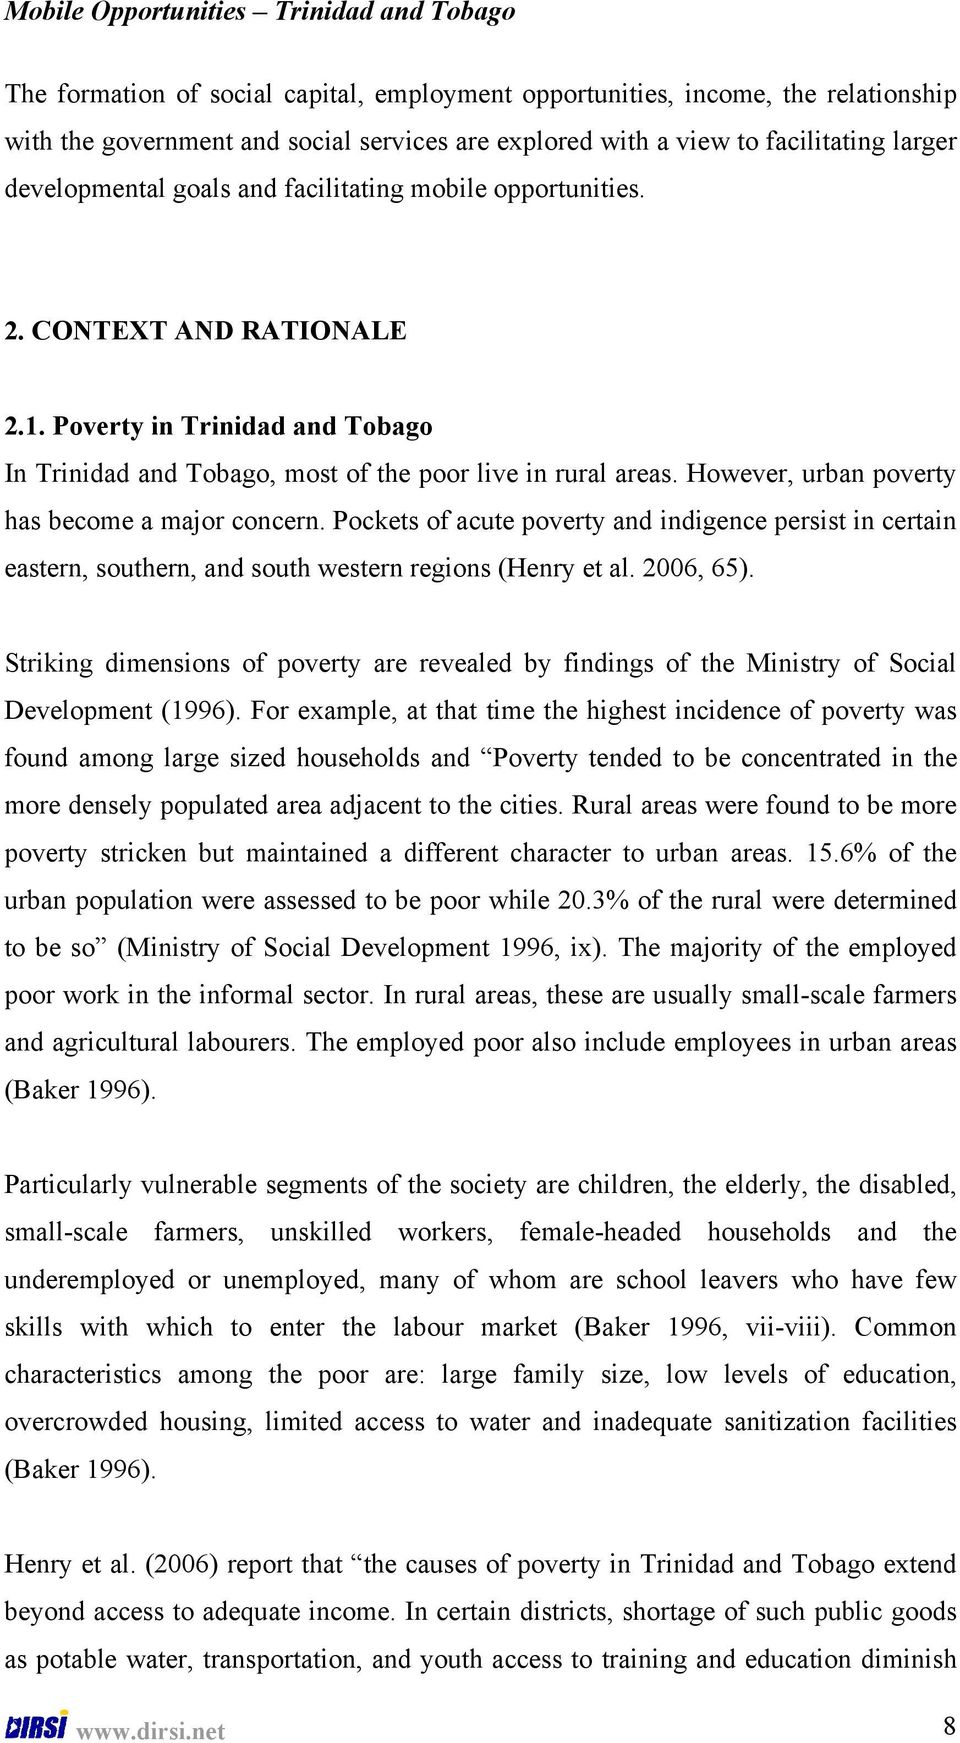 However, urban poverty has become a major concern. Pockets of acute poverty and indigence persist in certain eastern, southern, and south western regions (Henry et al. 2006, 65).